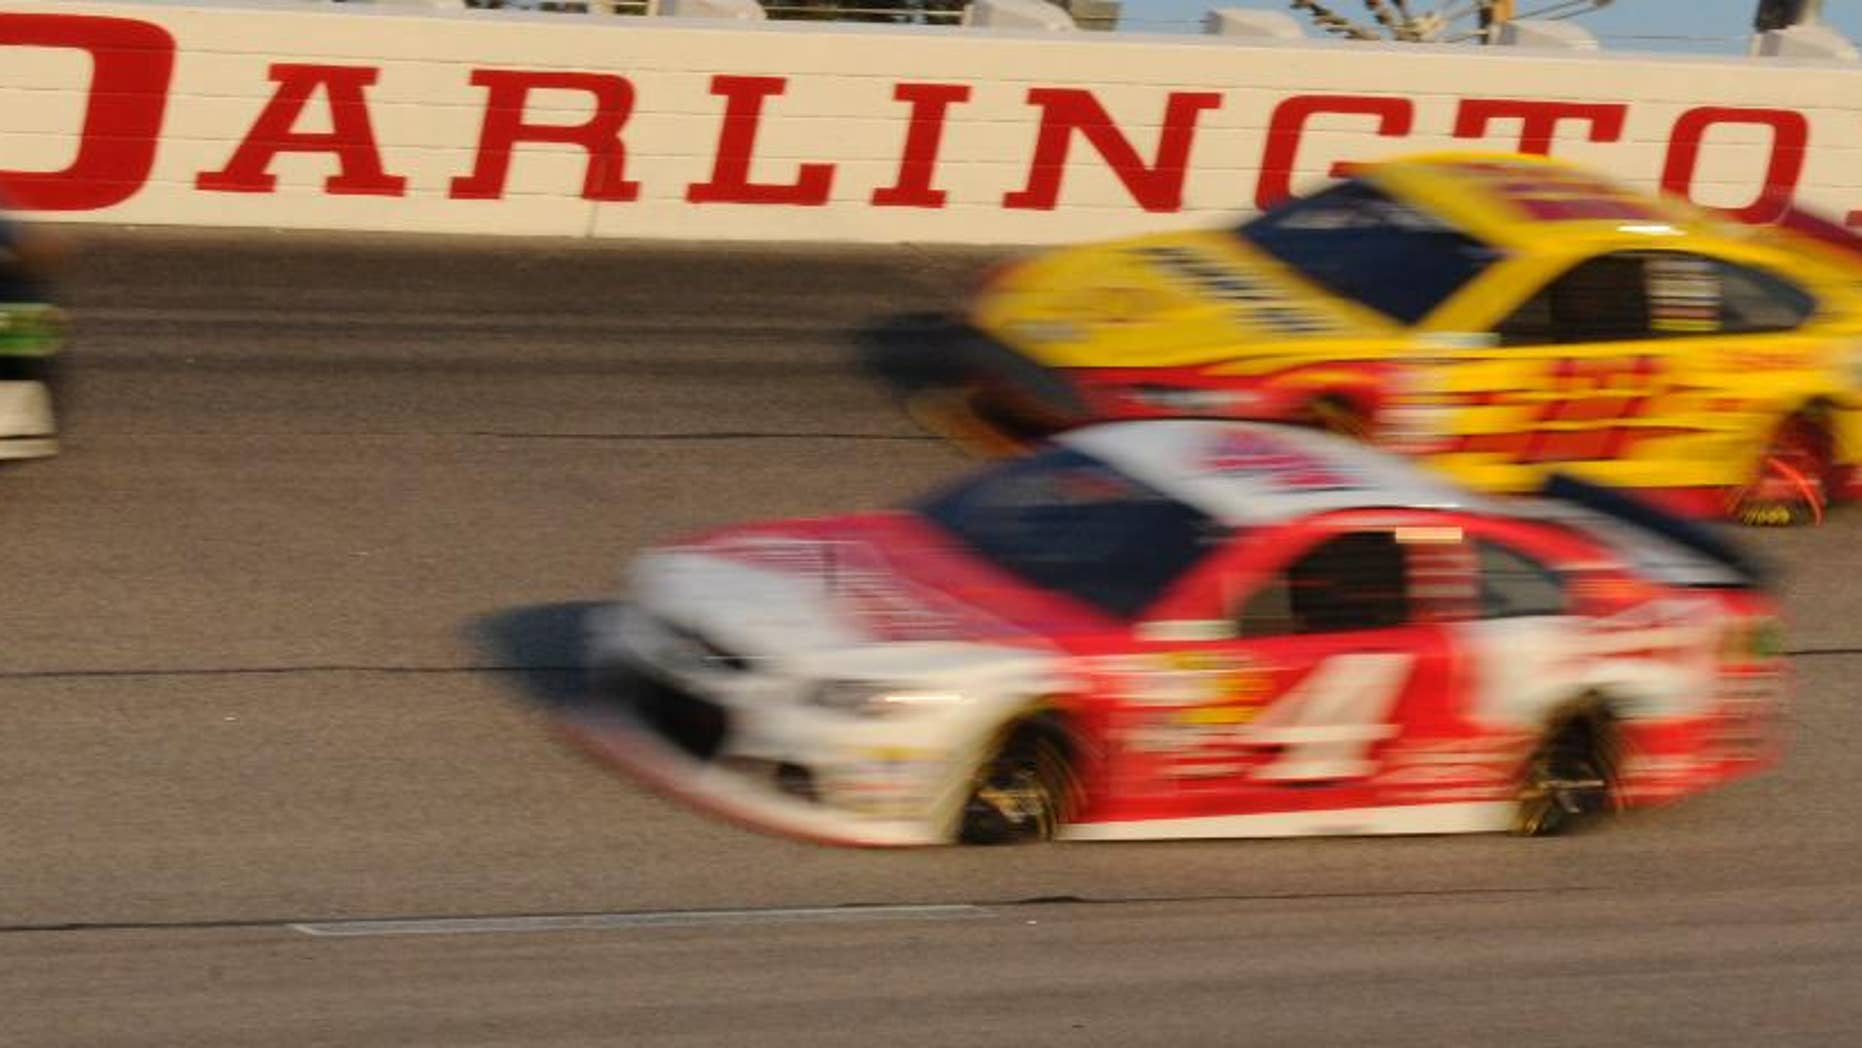 FILE - In this April 12, 2014, file photo, Kevin Harvick (4) and Joey Logano (22) race during a NASCAR Sprint Cup series auto race at Darlington Raceway in Darlington, S.C. The superspeedway that had been a springtime staple of NASCAR the past 10 seasons has gone more than a year since engines were revved for the Southern 500.  (AP Photo/Mike McCarn, FIle)